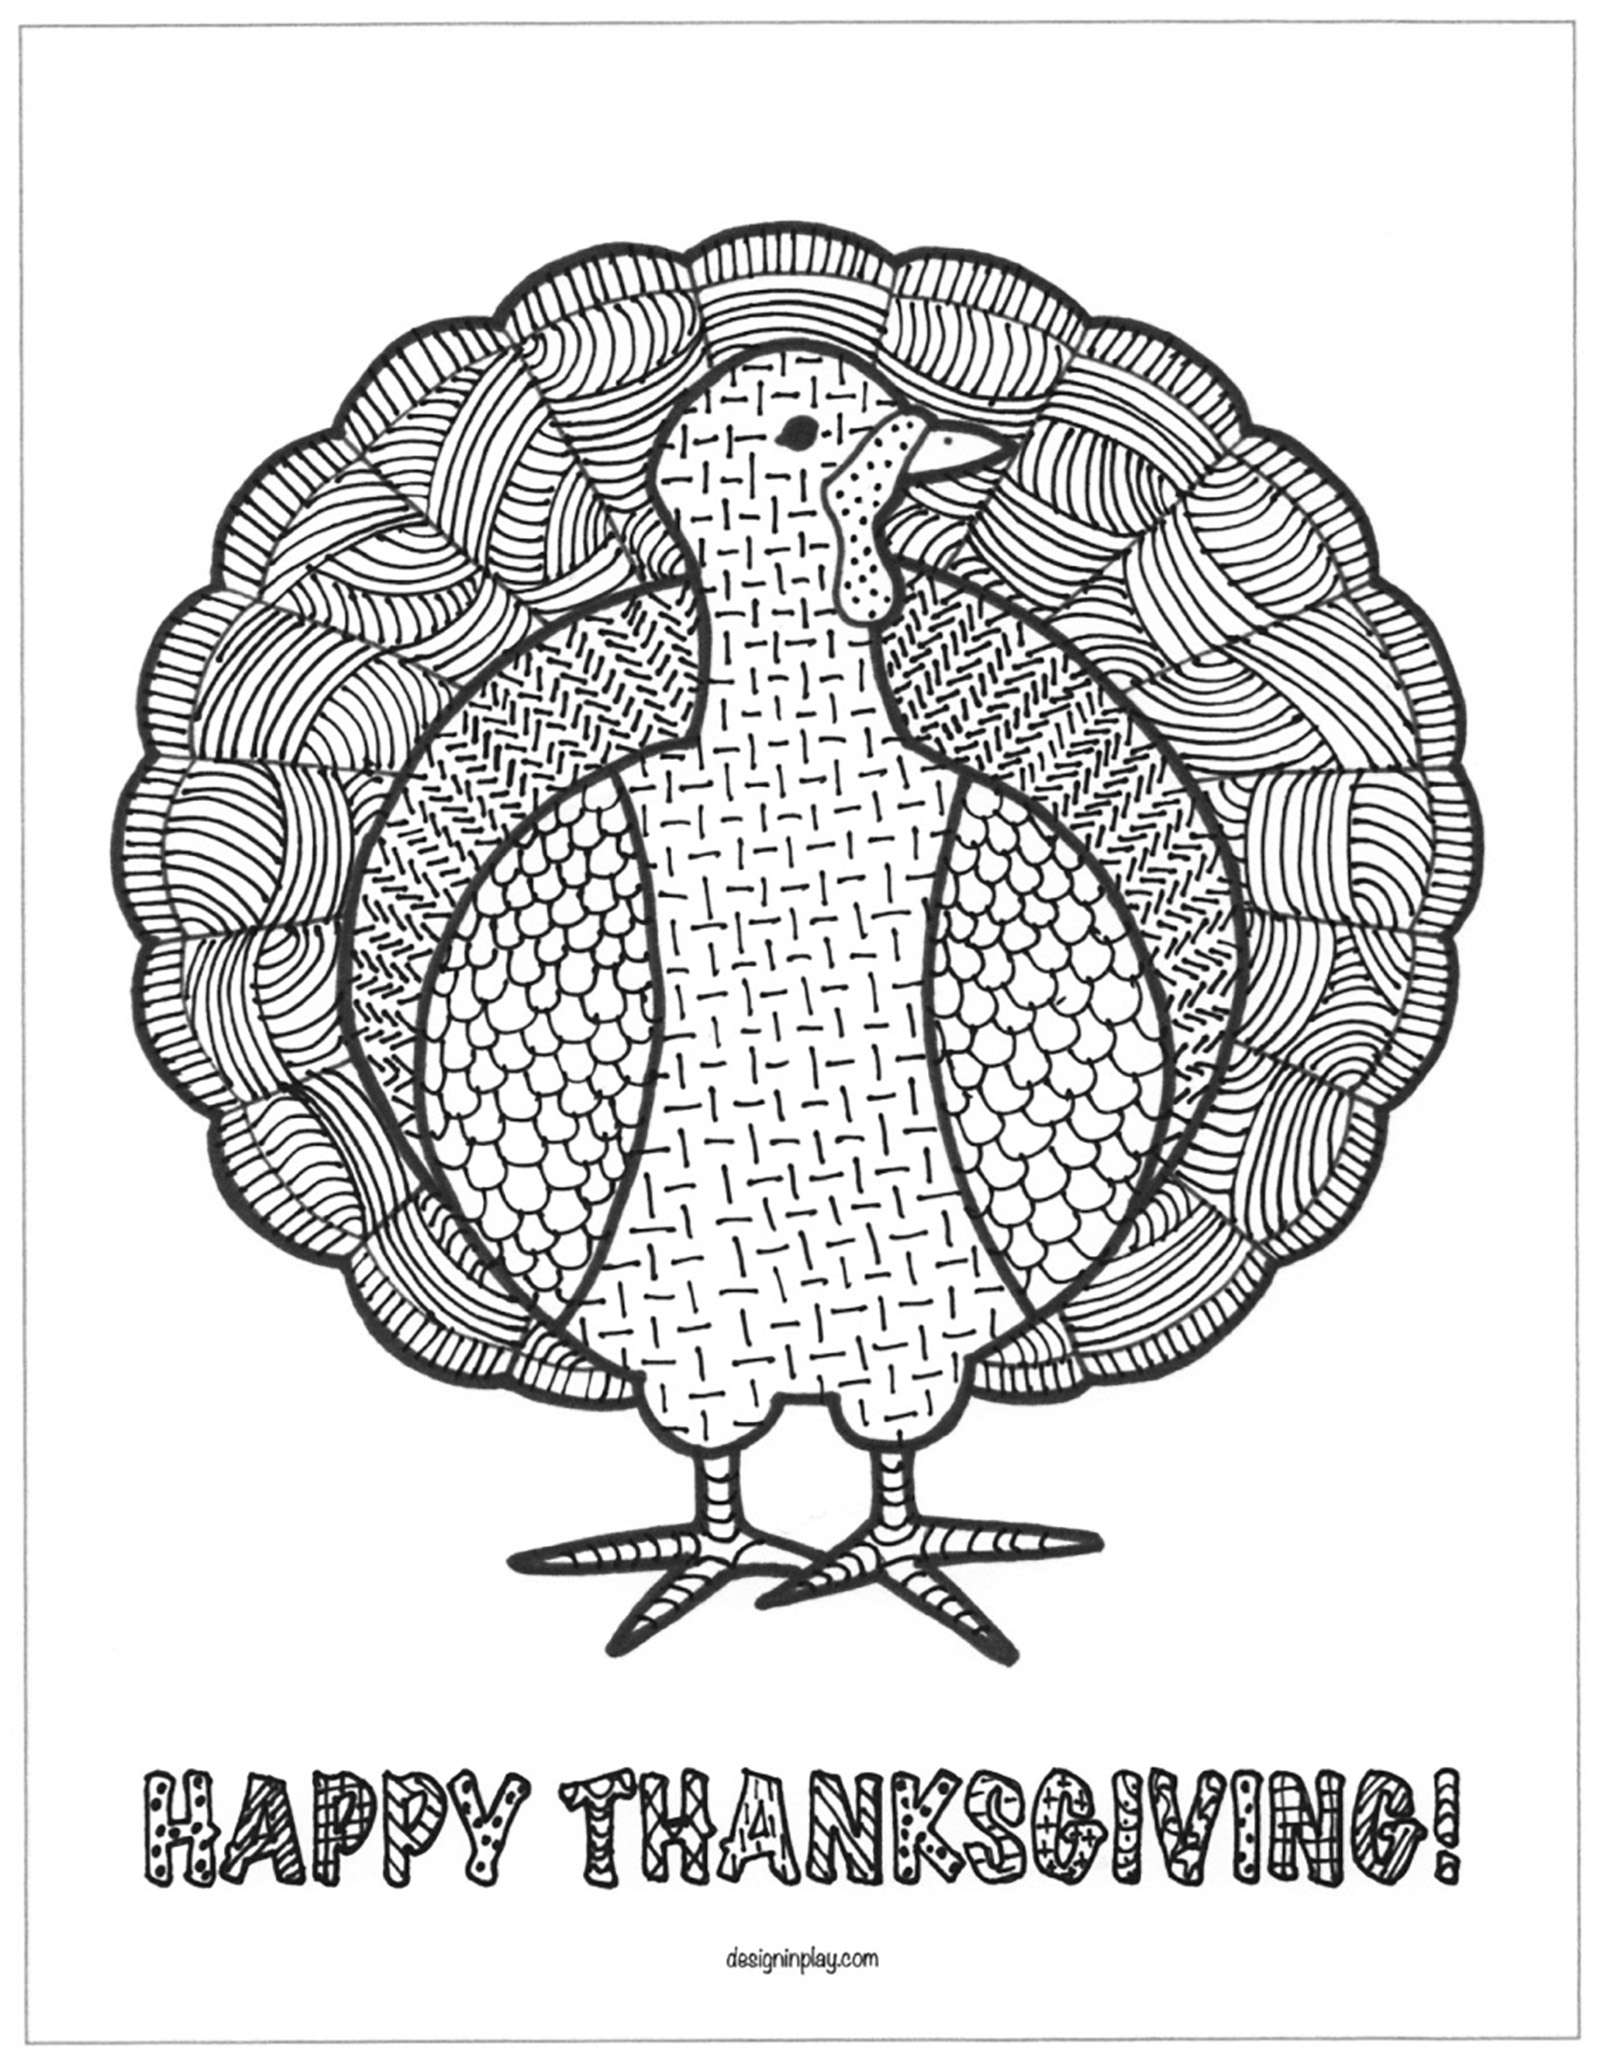 Disegni da colorare per adulti : Thanksgiving - 15